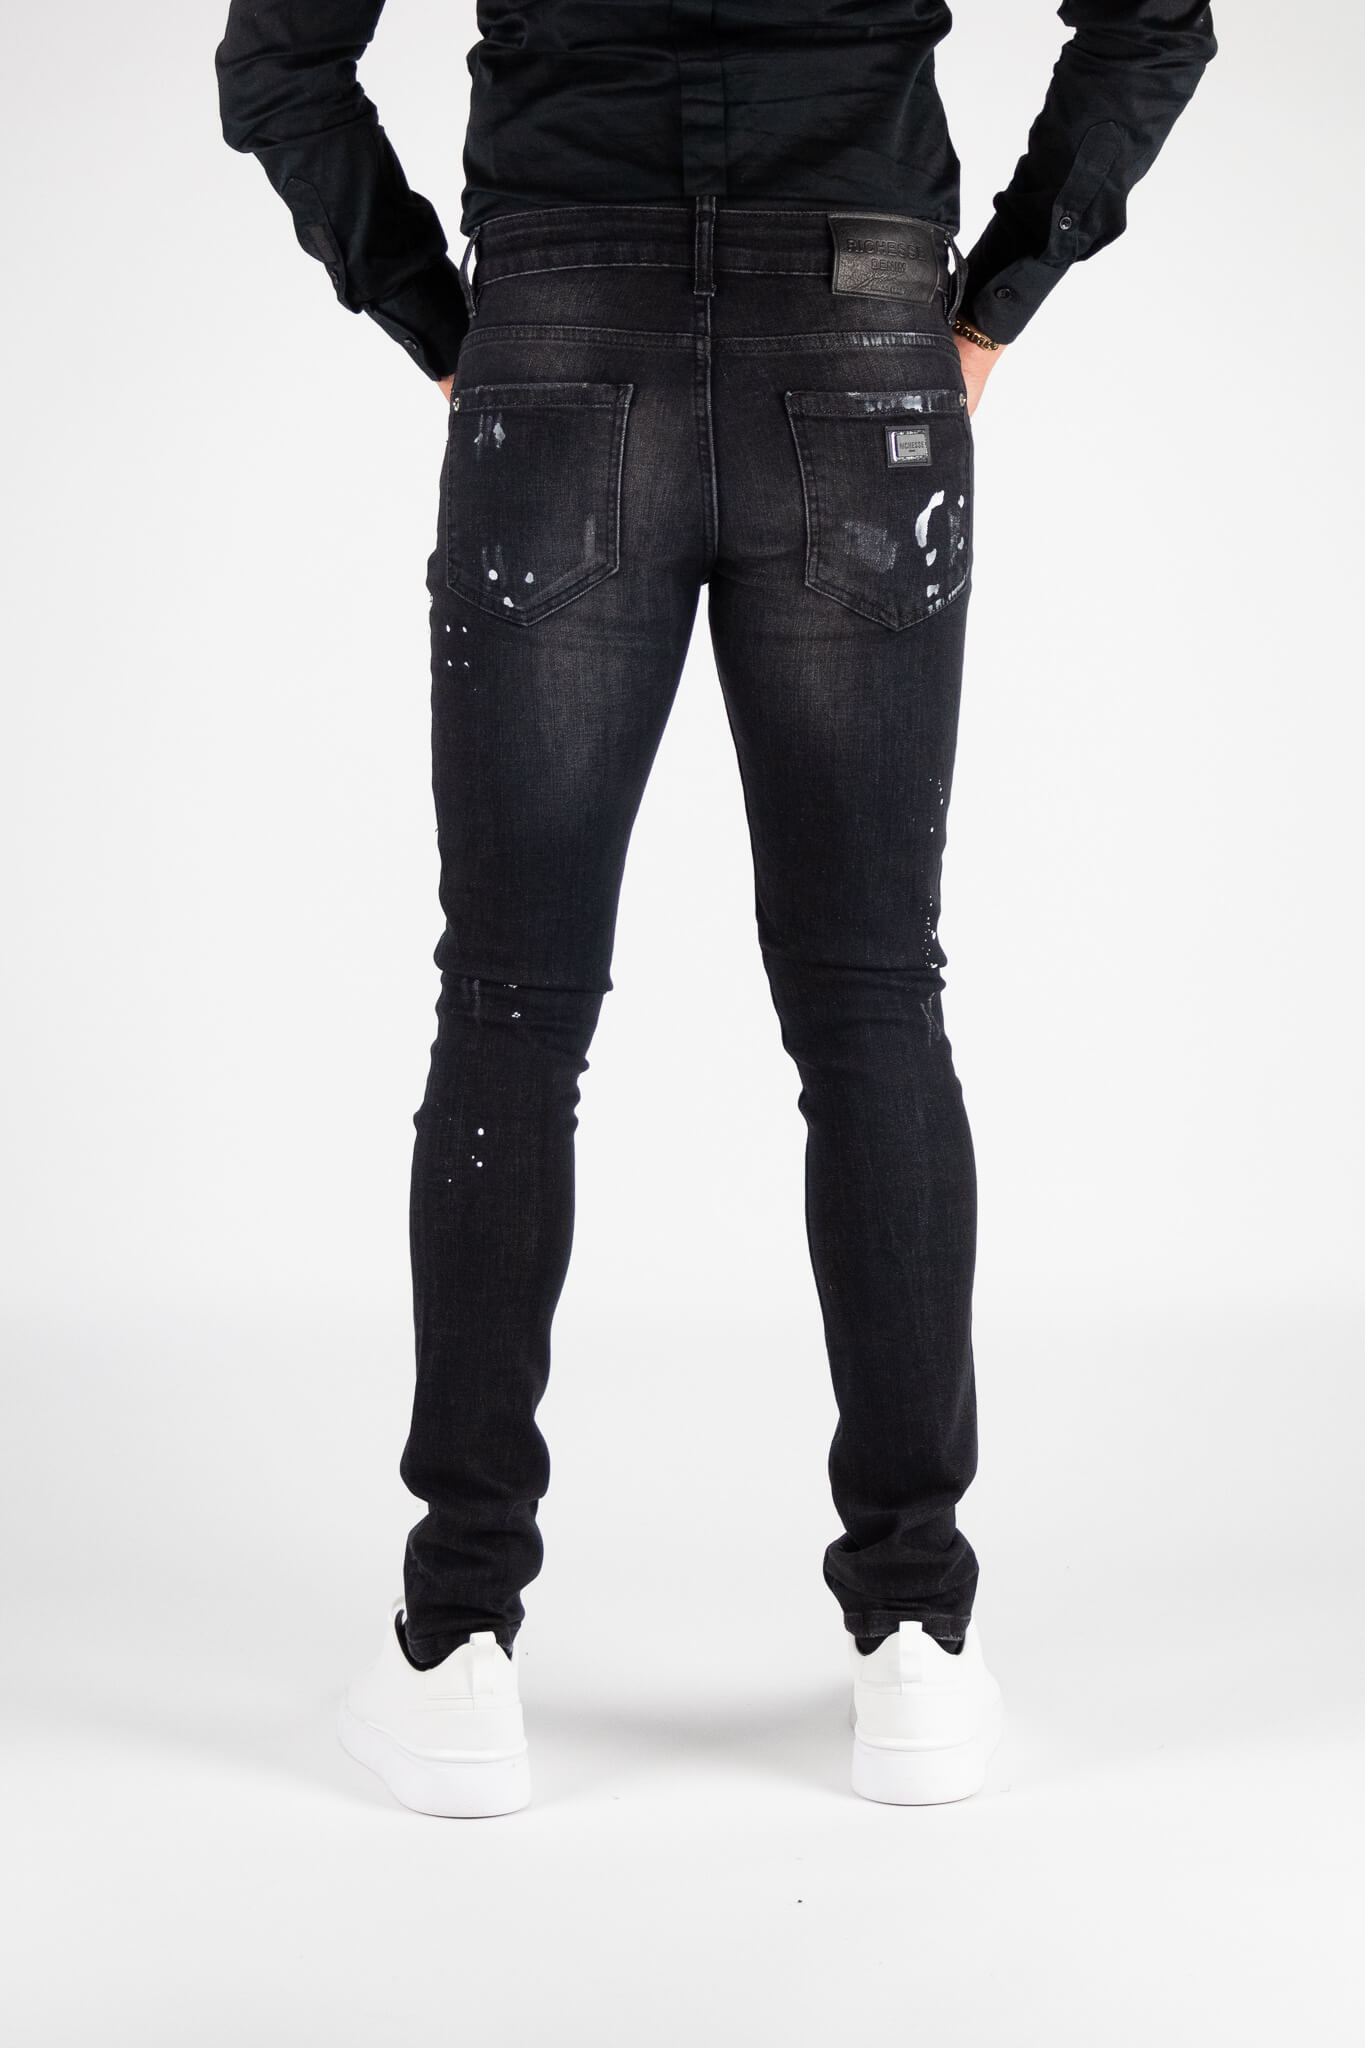 Chaves Black Jeans 6